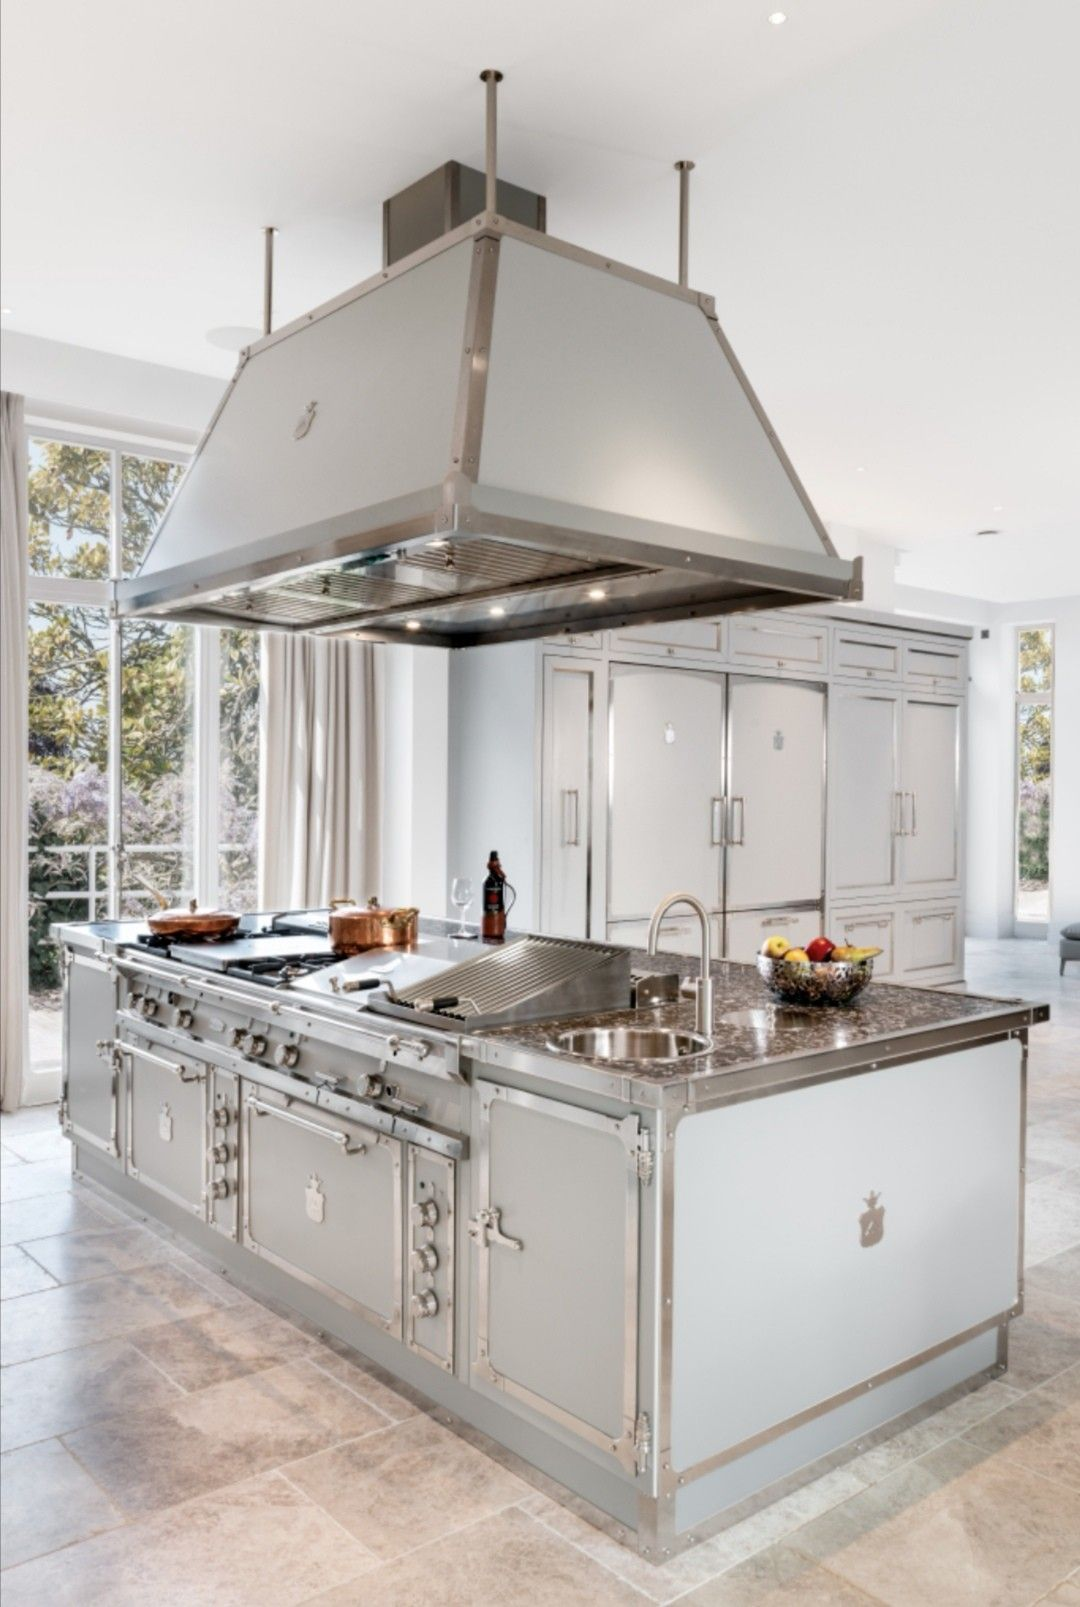 Our Range Cookers And Kitchens Are A Unique Mix Between A Professional Cooker And A Balanced D Kitchen Fittings Industrial Kitchen Design Best Kitchen Cabinets